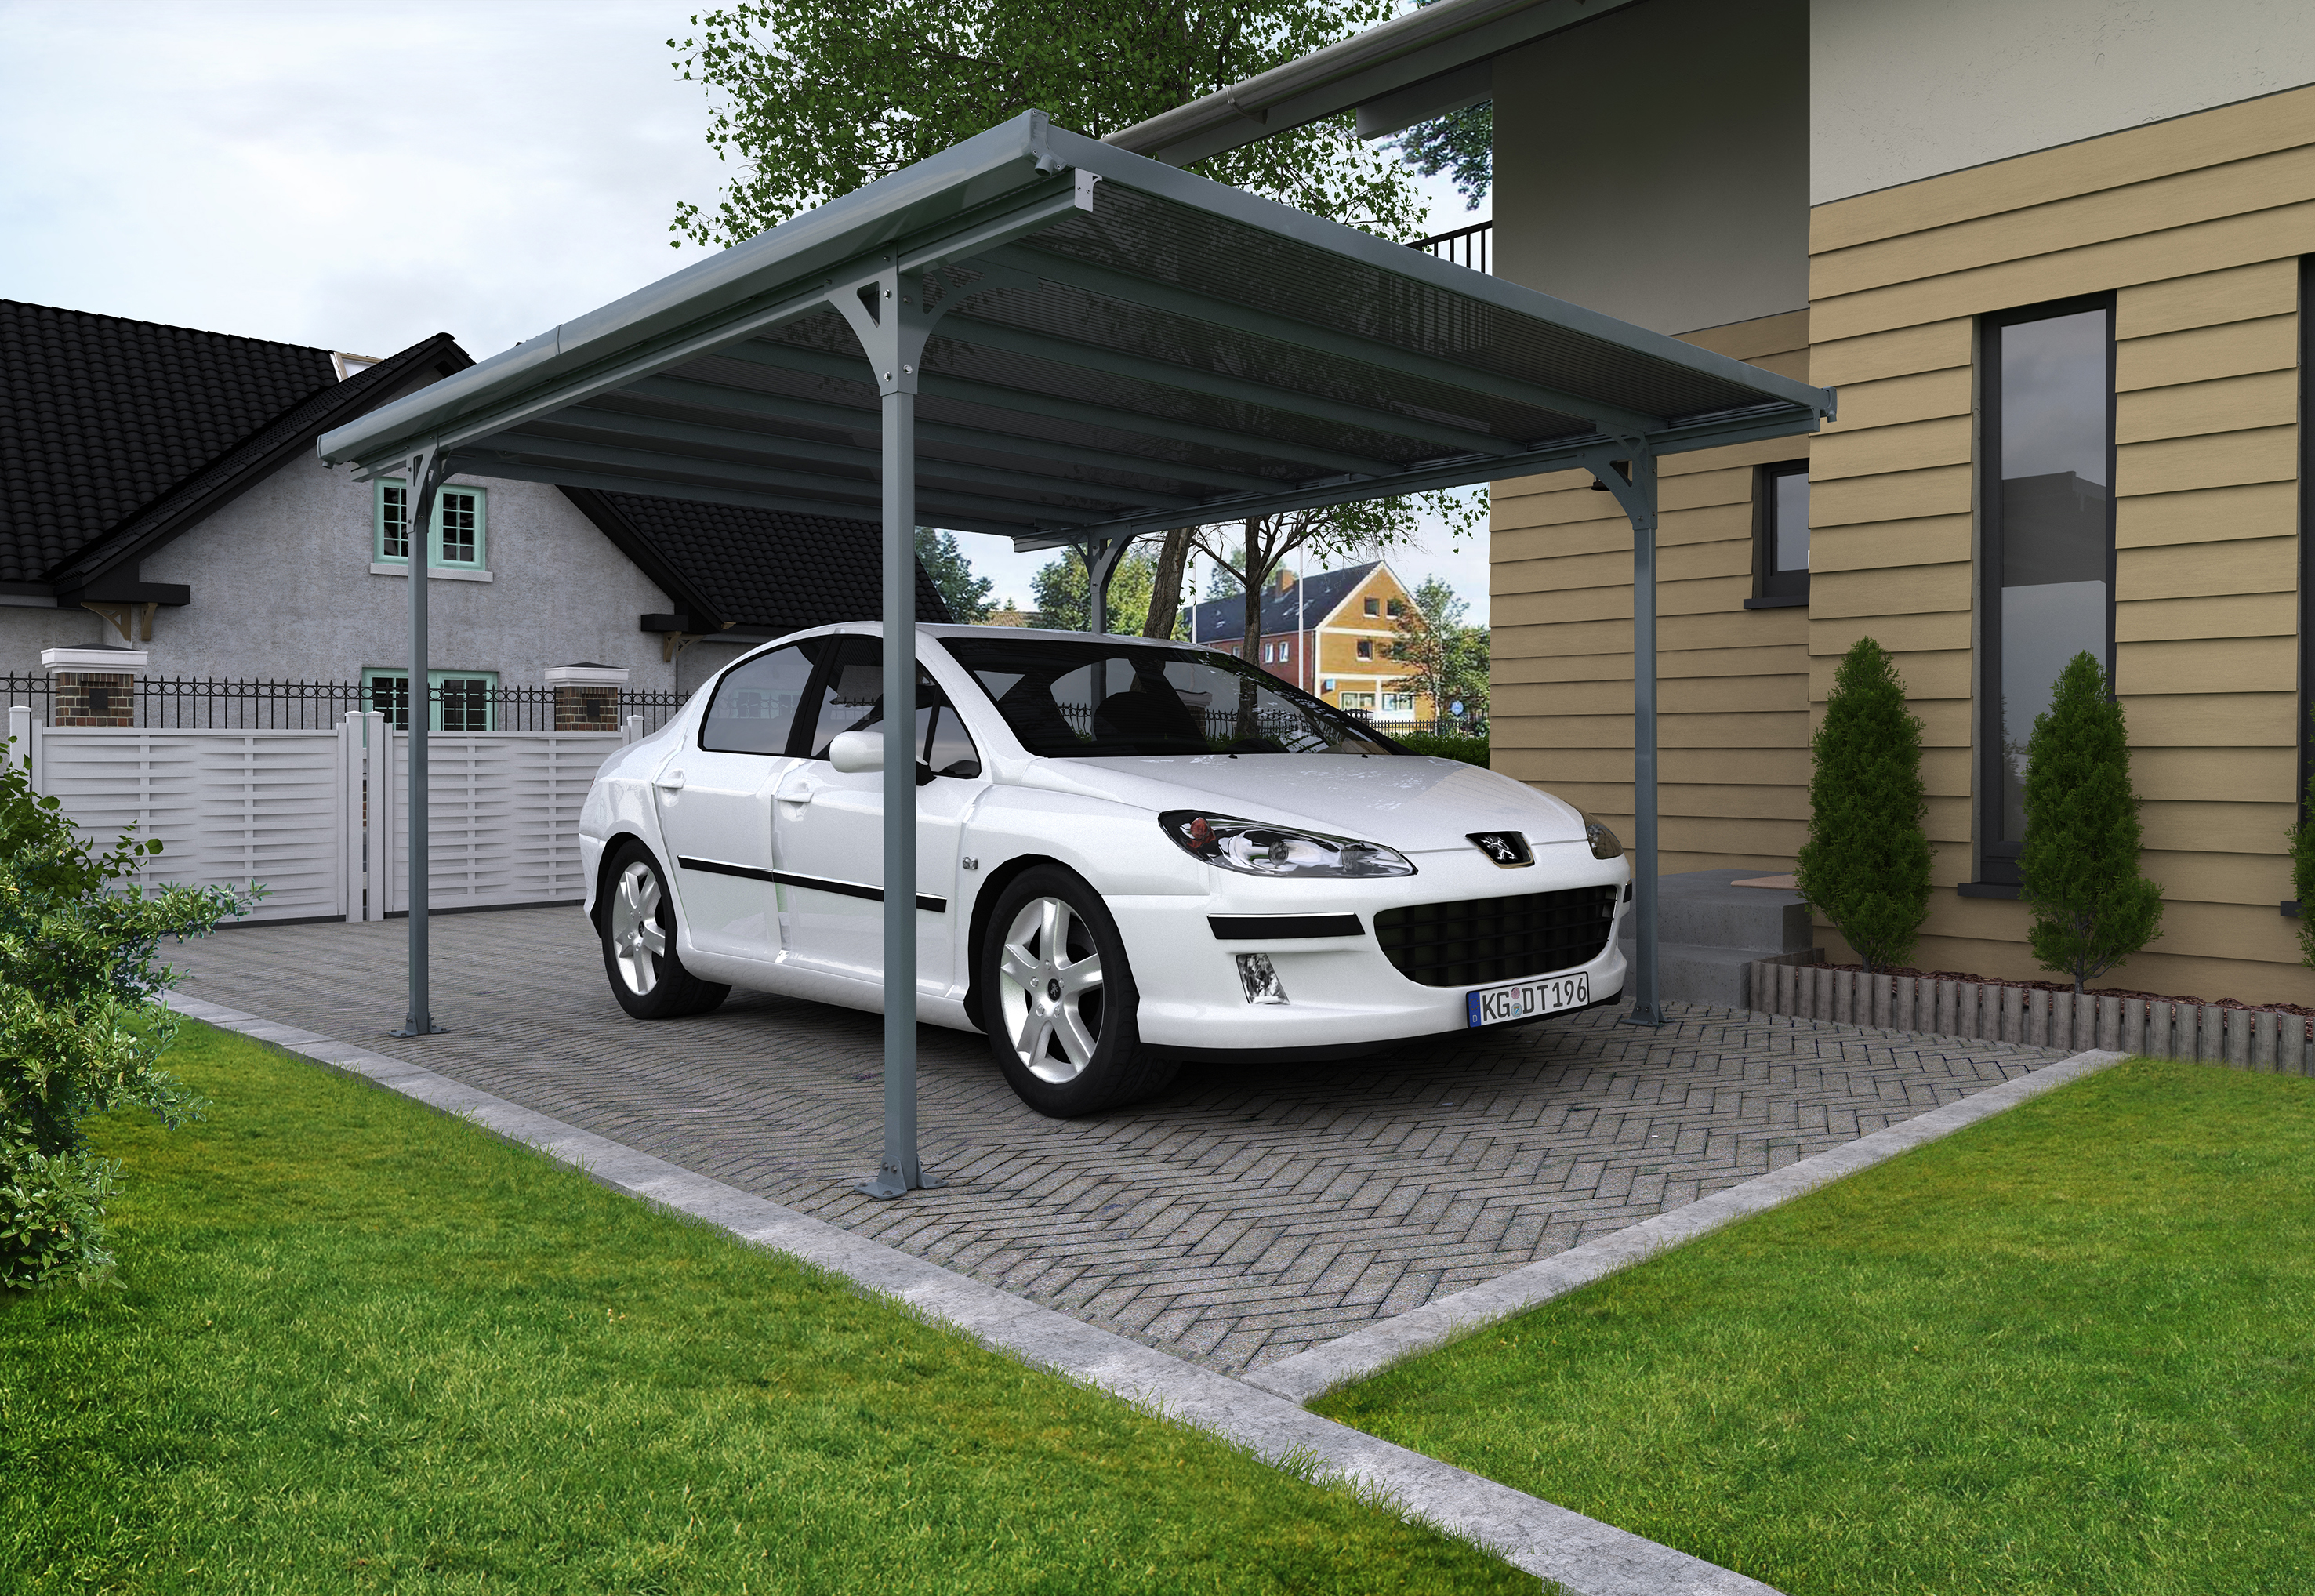 prix carport alu prix with prix carport alu elegant. Black Bedroom Furniture Sets. Home Design Ideas